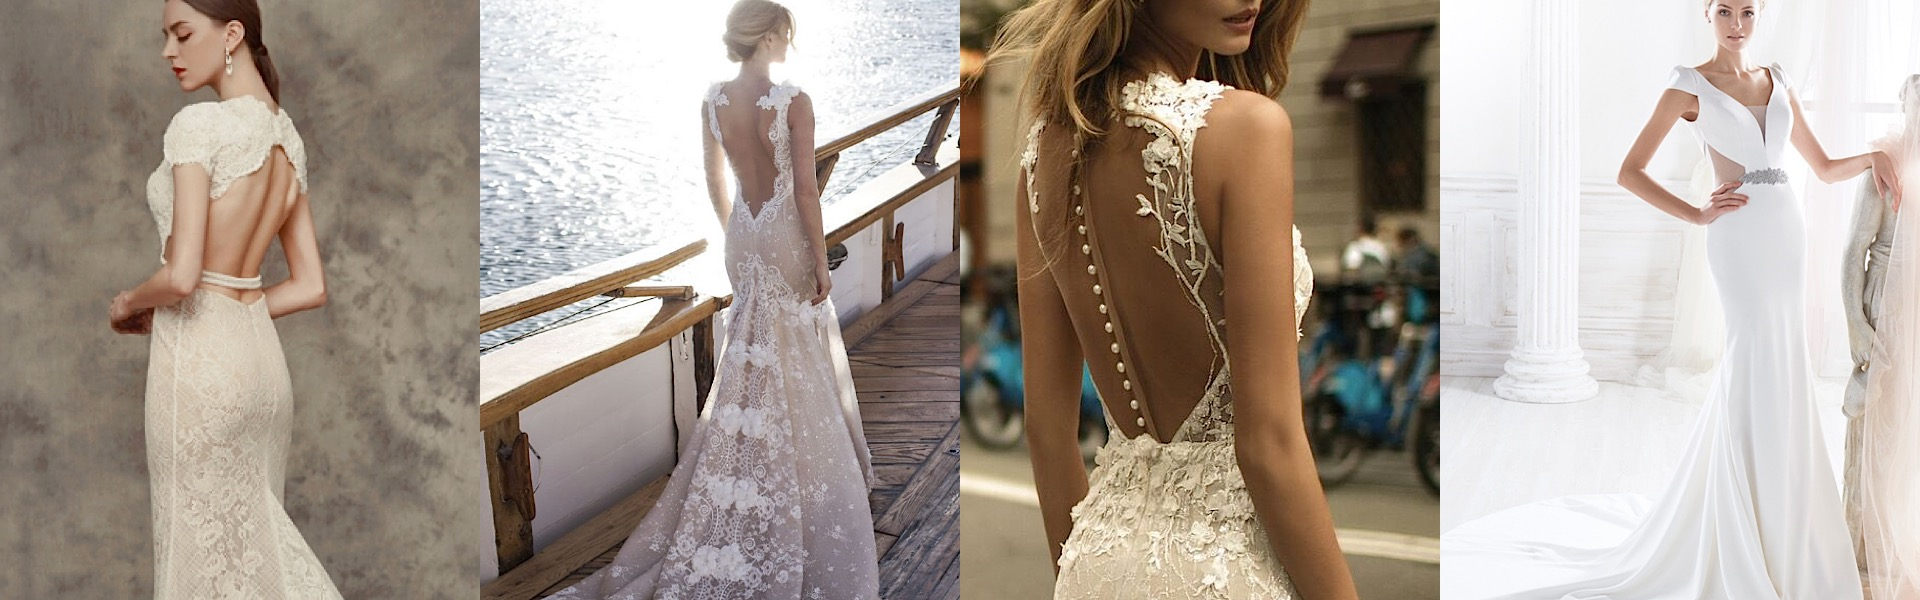 25 Stunning Mermaid Wedding Dresses And Where to Find Them